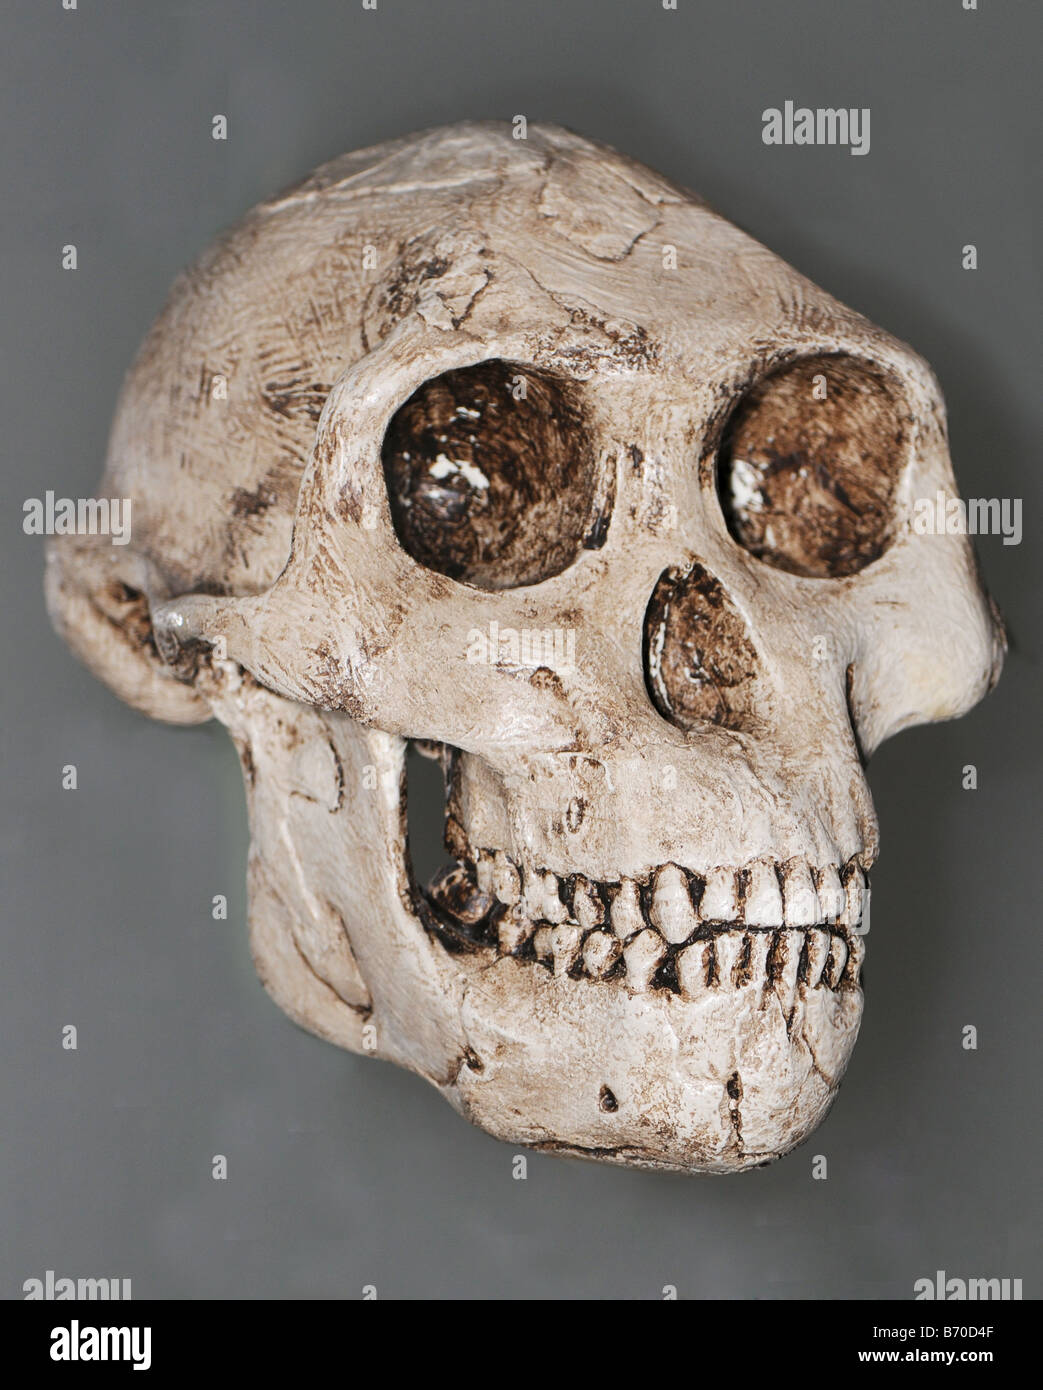 cast skull of the skull of the extinct hominid  Australopithecus afarensis - Stock Image